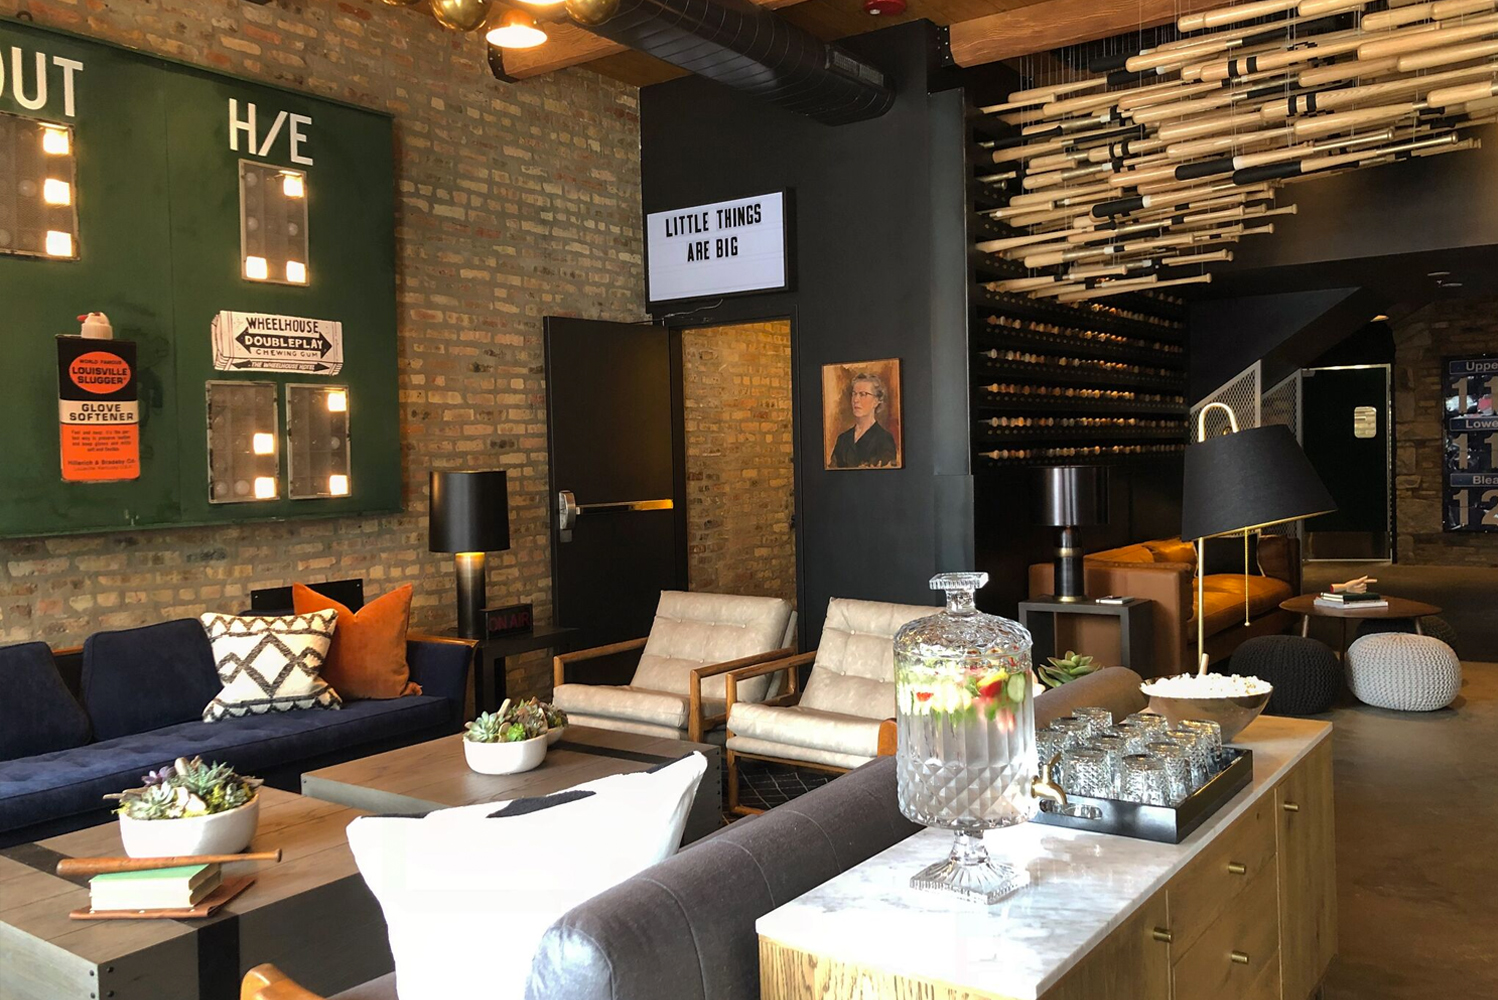 The Wheelhouse Hotel's design blends old and new, with nods to Wrigleyville's baseball history felt throughout the property.